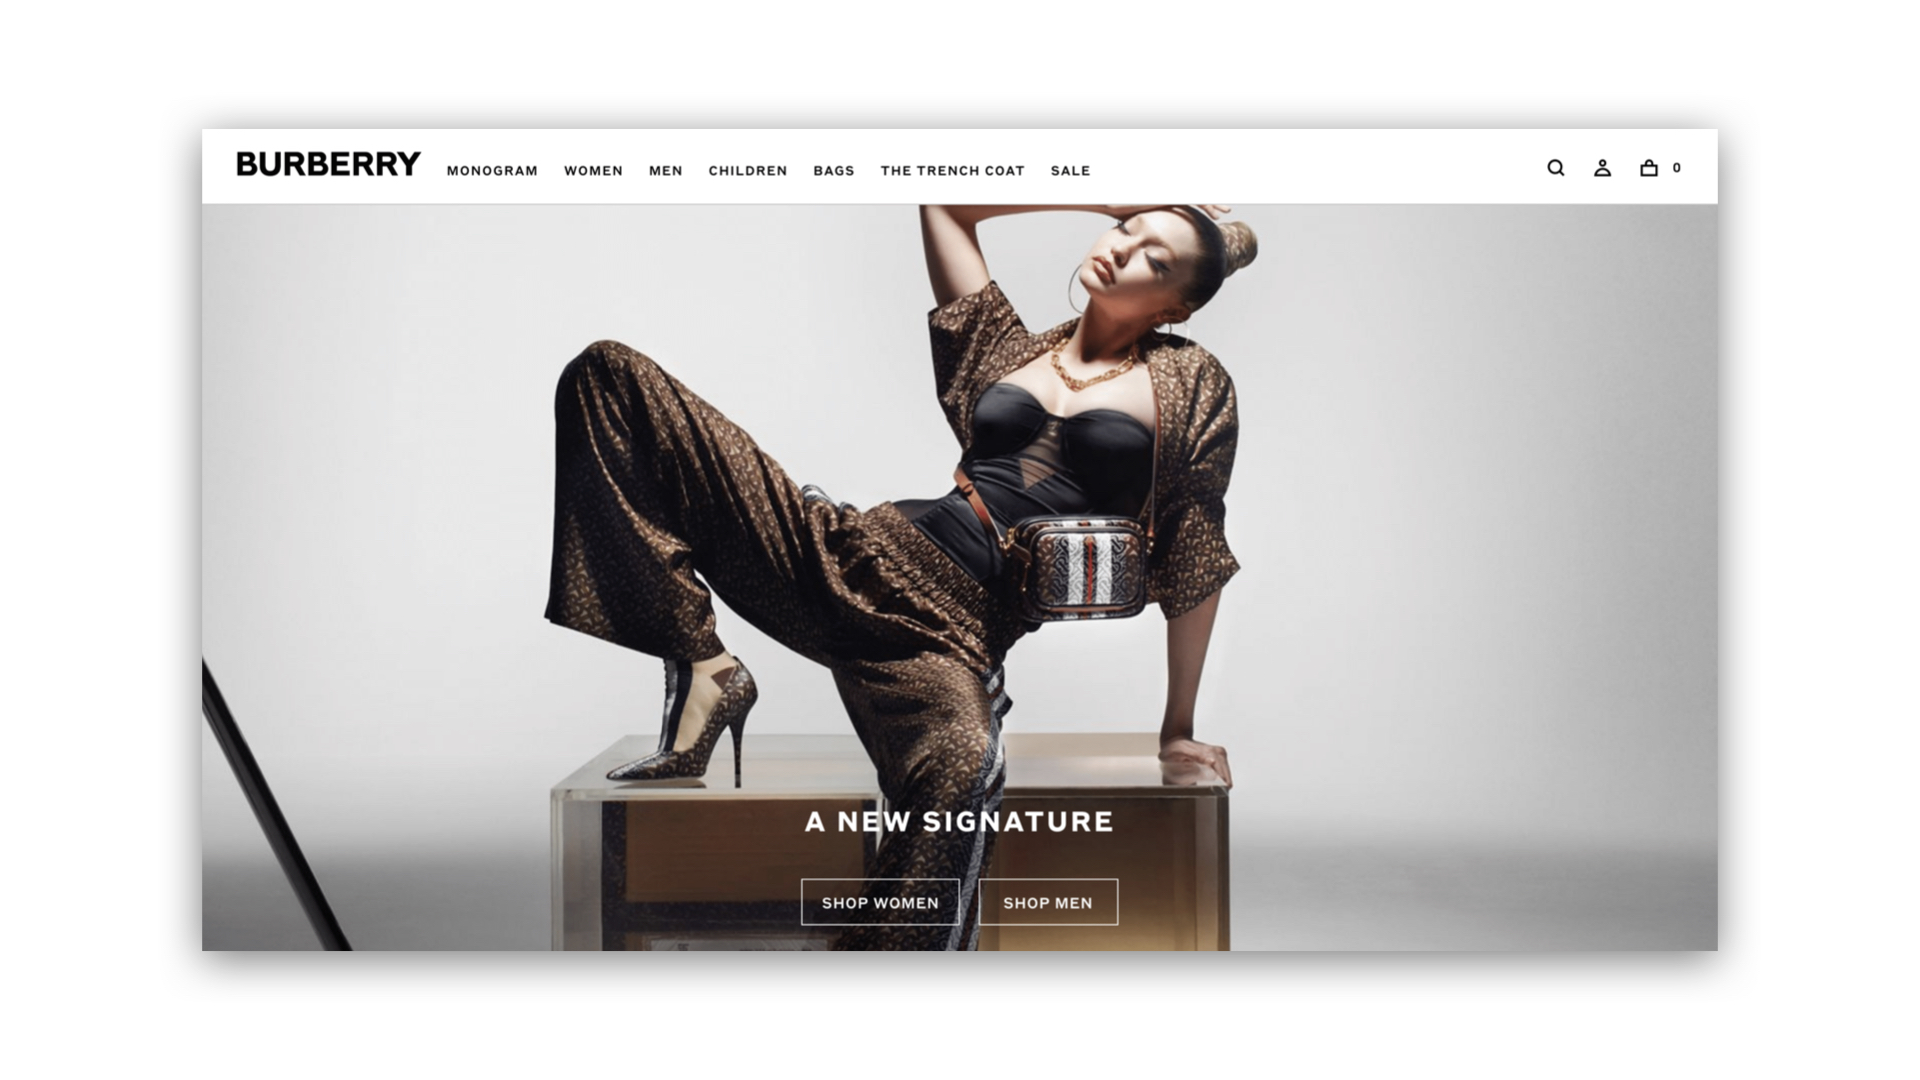 G & Co. is a luxury marketing agency and luxury digital agency: Burberry's eCommerce site homepage